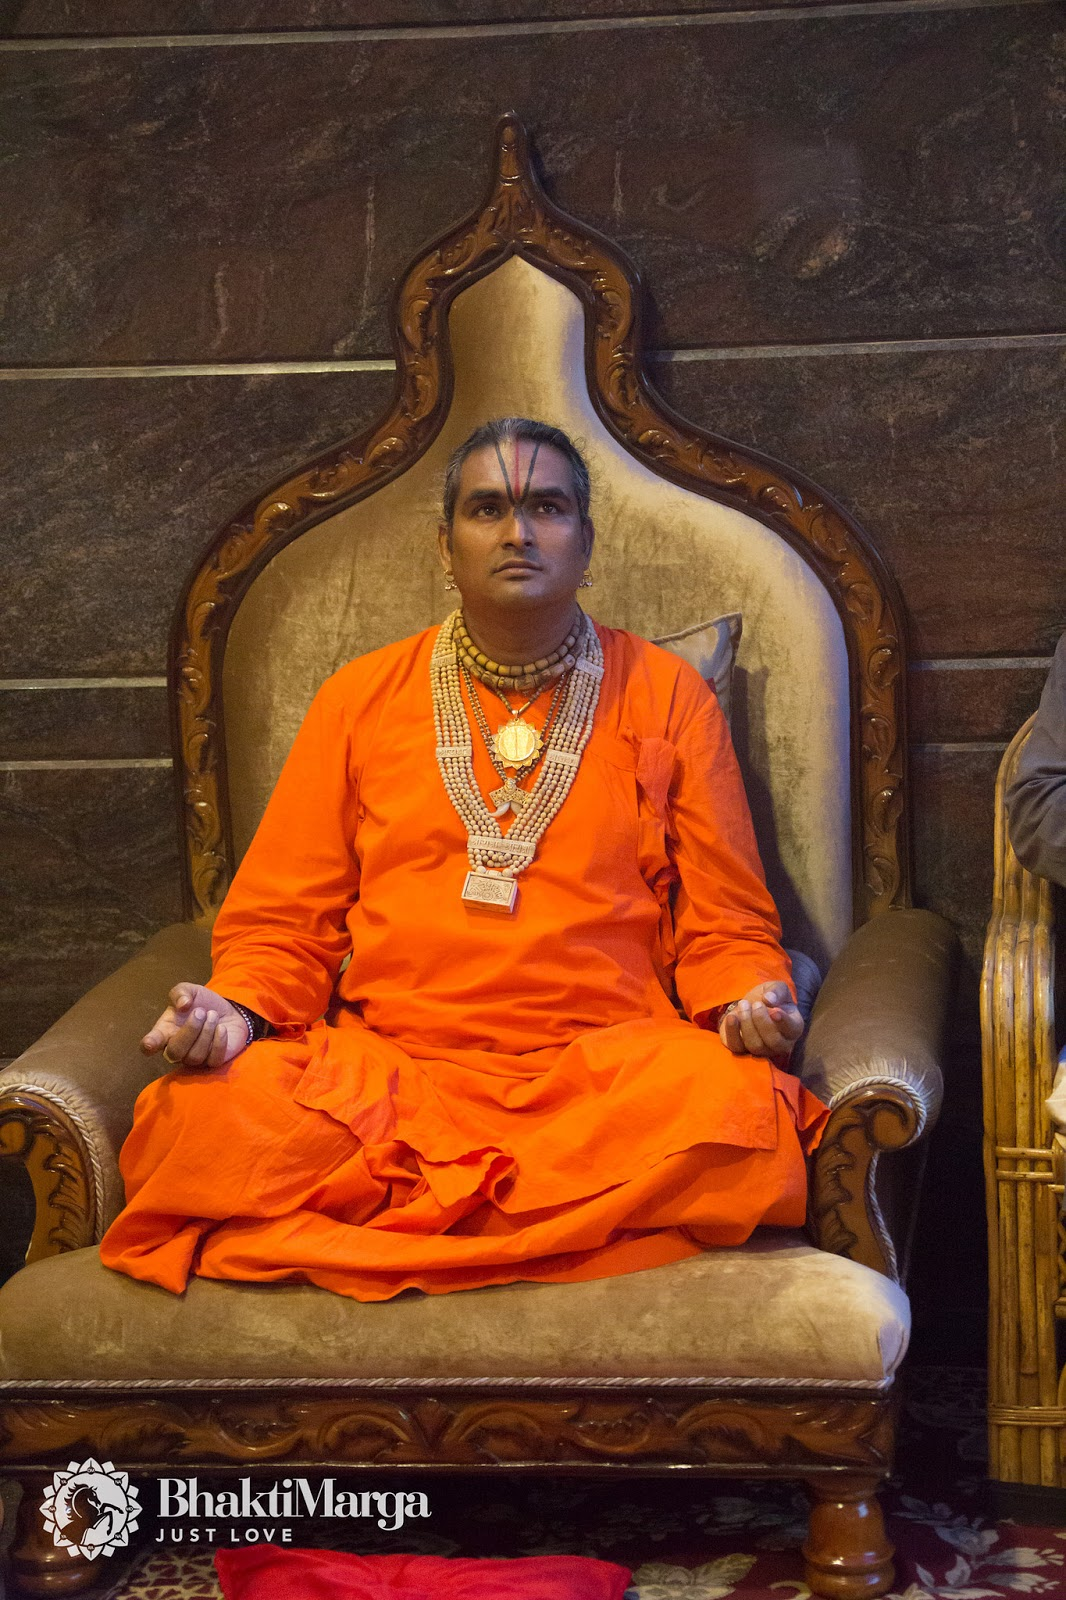 discours de sri swami vishwananda que faire d 39 un probl me. Black Bedroom Furniture Sets. Home Design Ideas